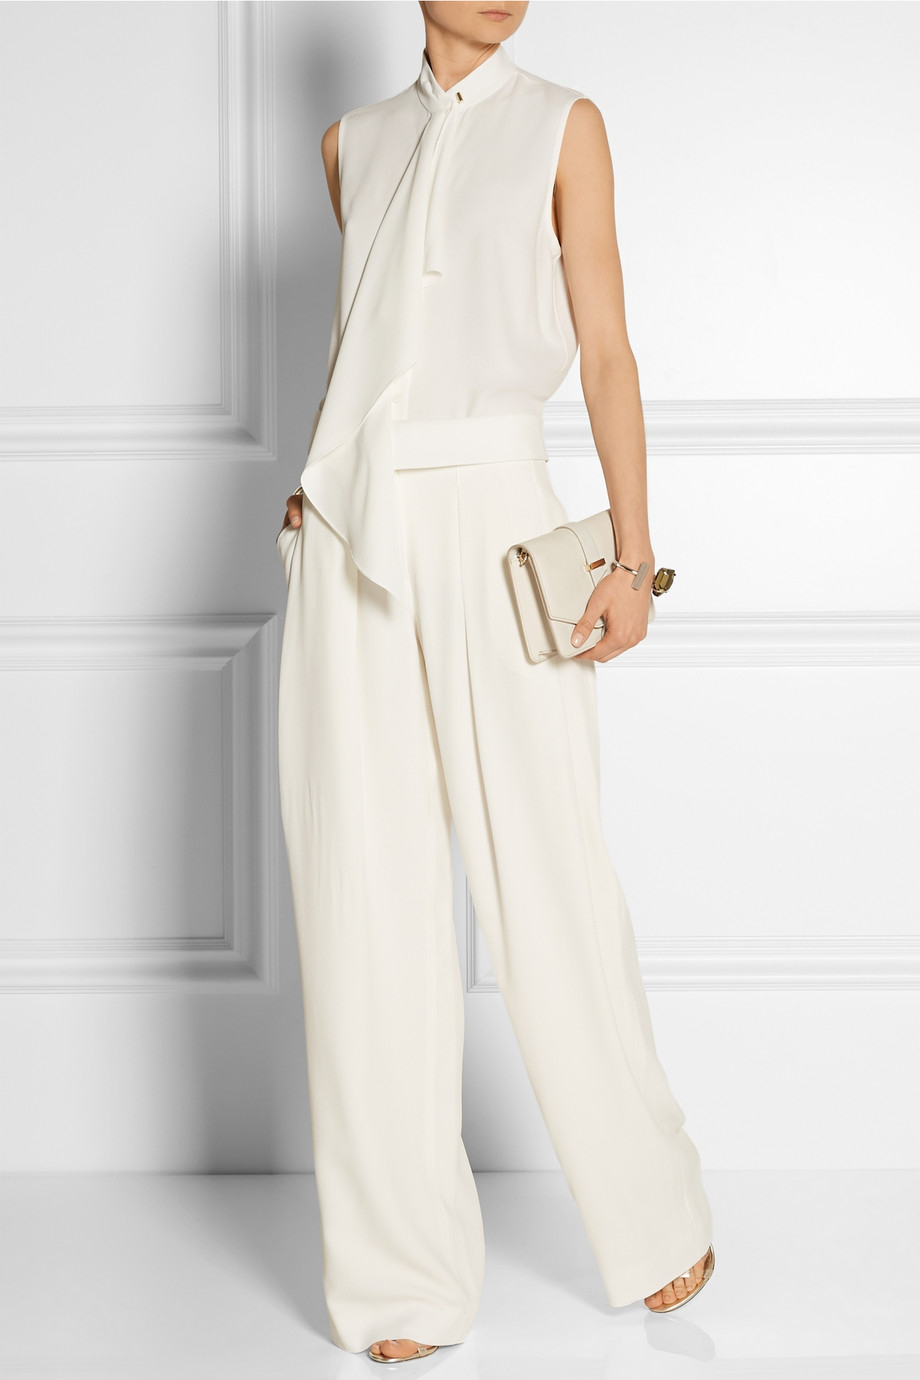 Jason wu Pleated Crepe Wide-leg Pants in White | Lyst